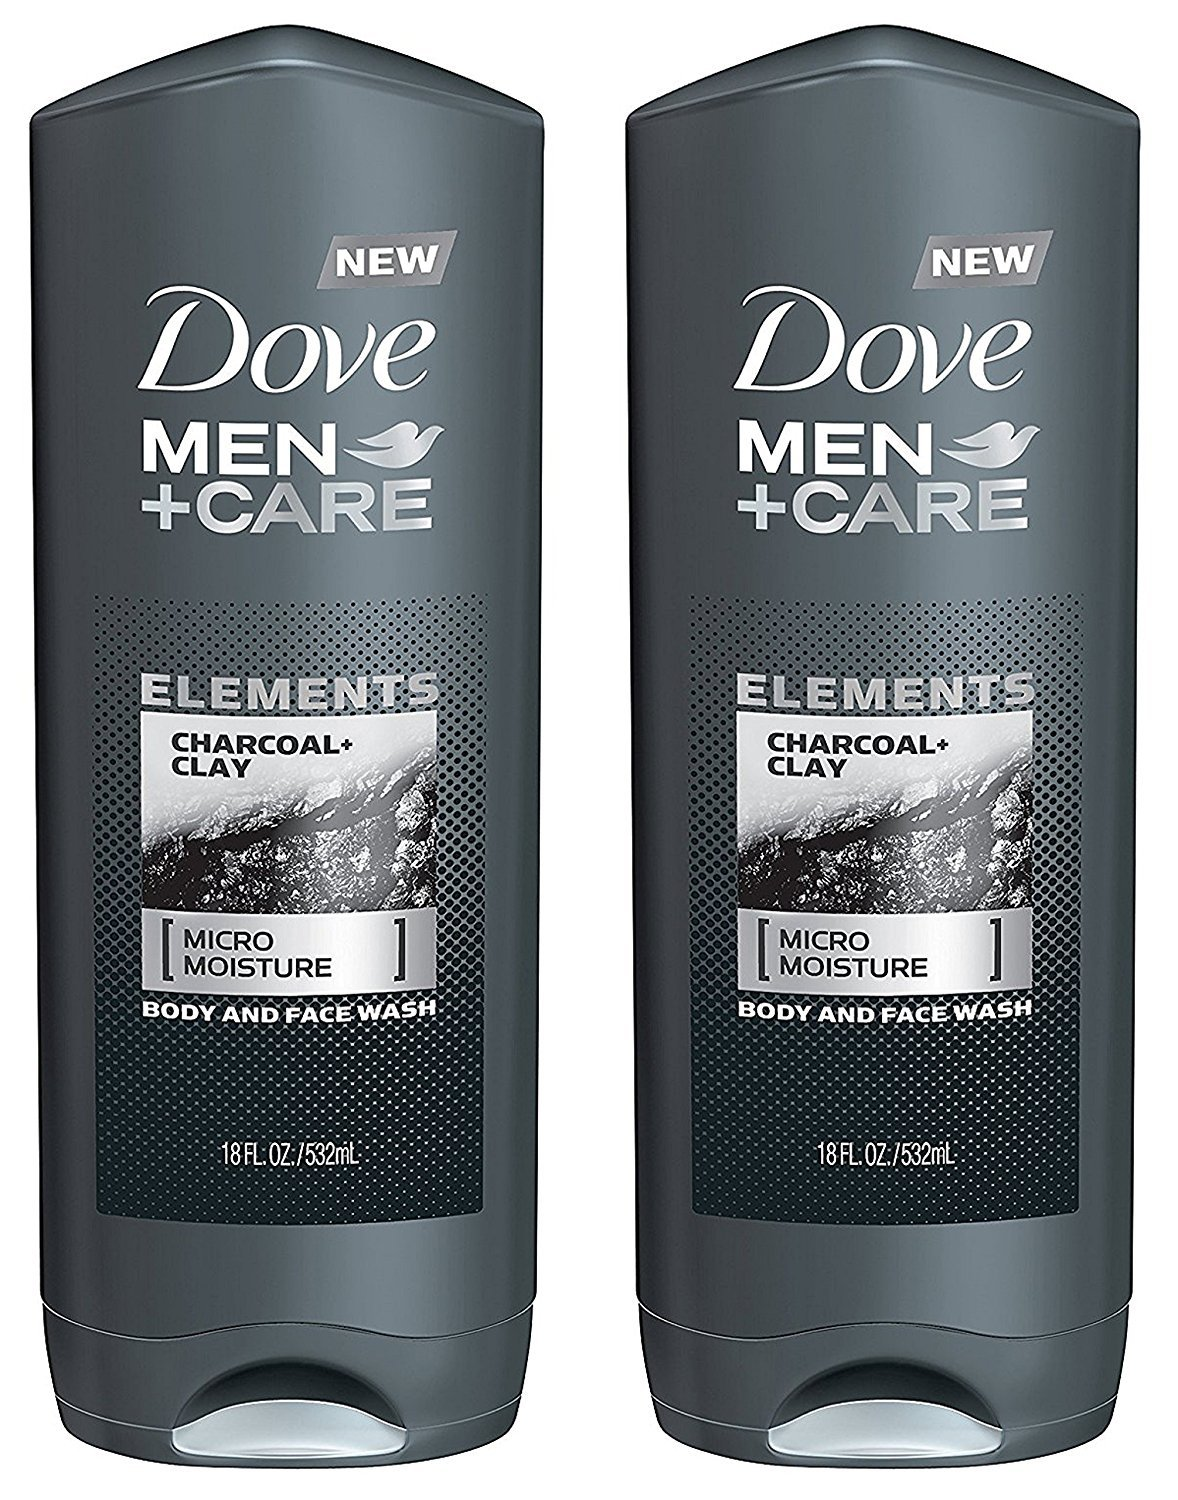 Amazon Com Dove Men Care Body And Face Wash Elements Charcoal Clay Net Wt 18 Fl Oz 532 Ml Per Bottle Pack Of 2 Bottles Beauty